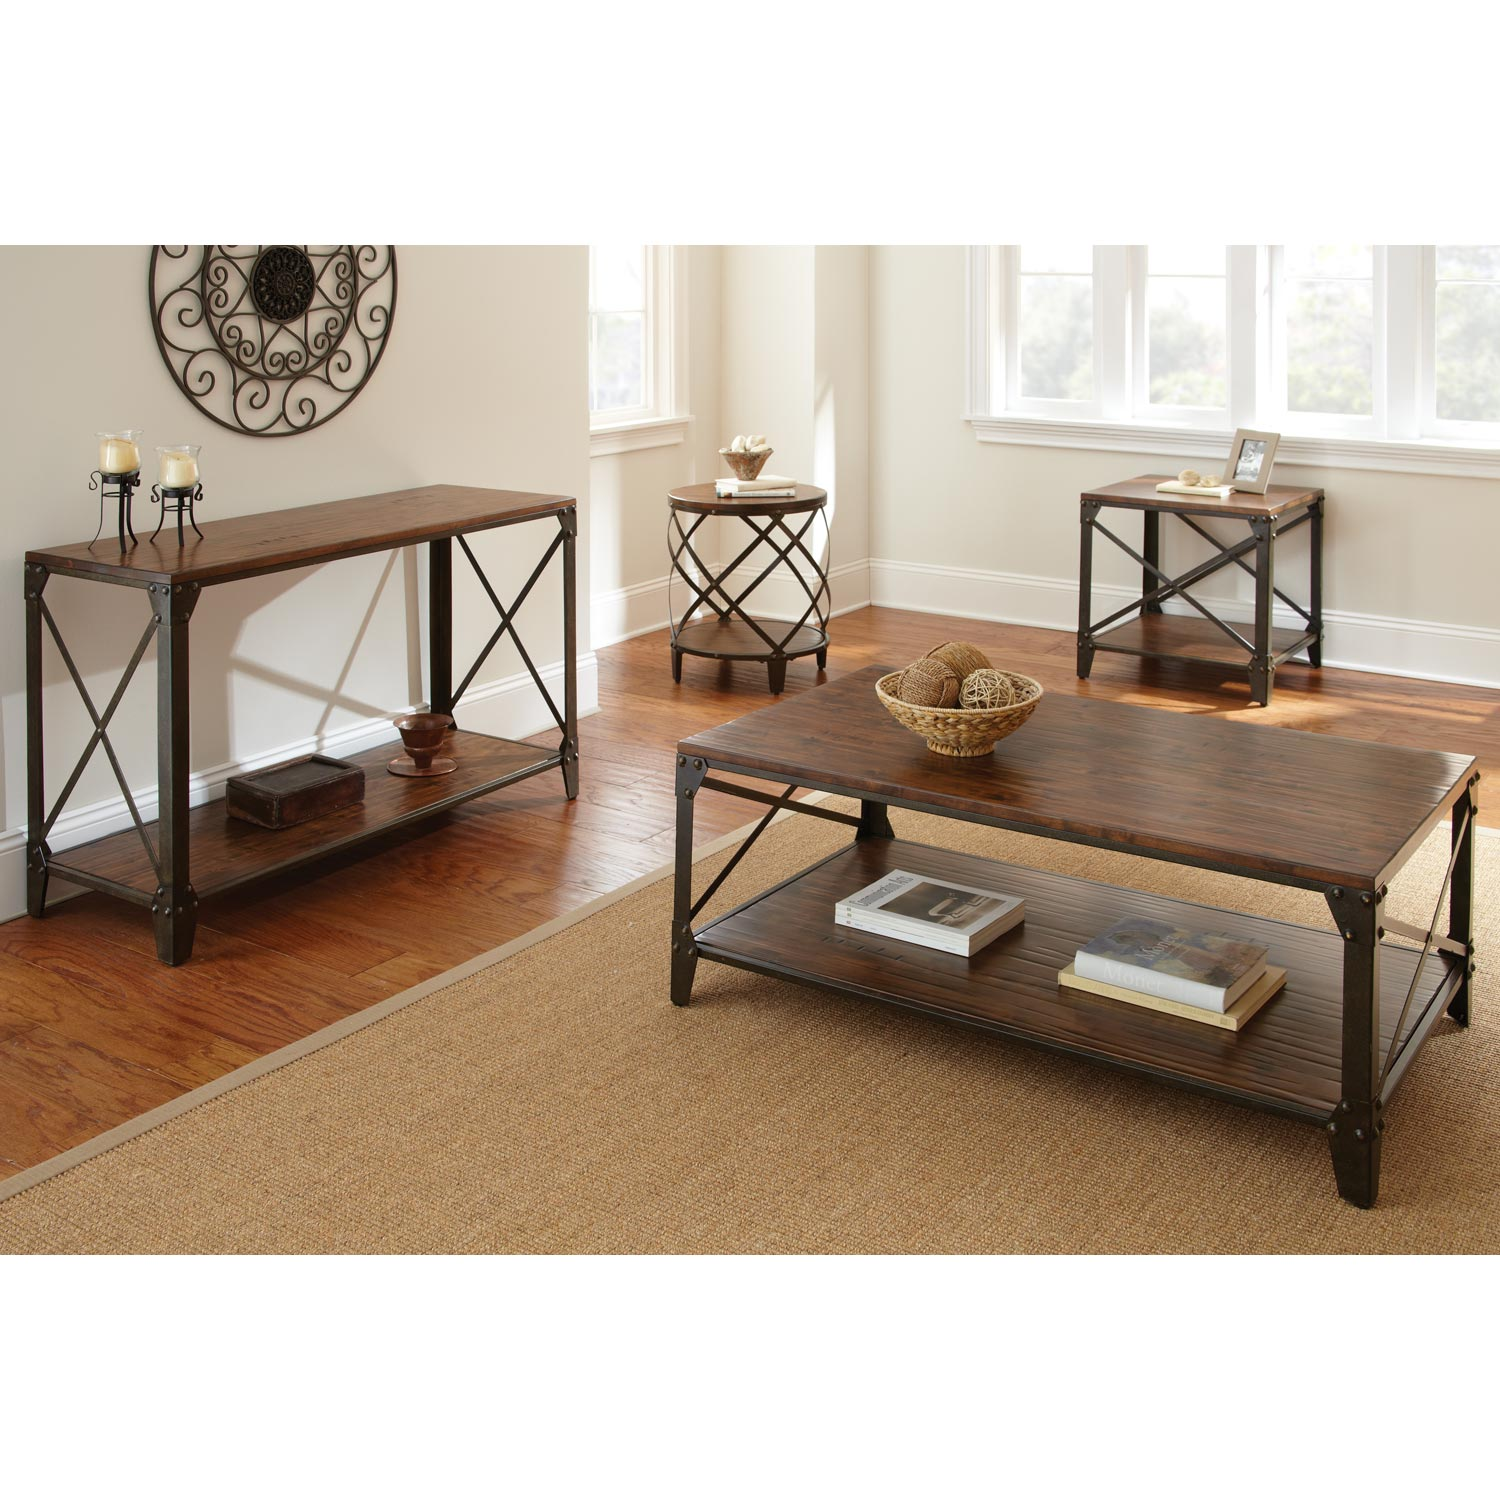 Winston Coffee Table - Distressed Tobacco, Antiqued Metal - SSC-WN400C